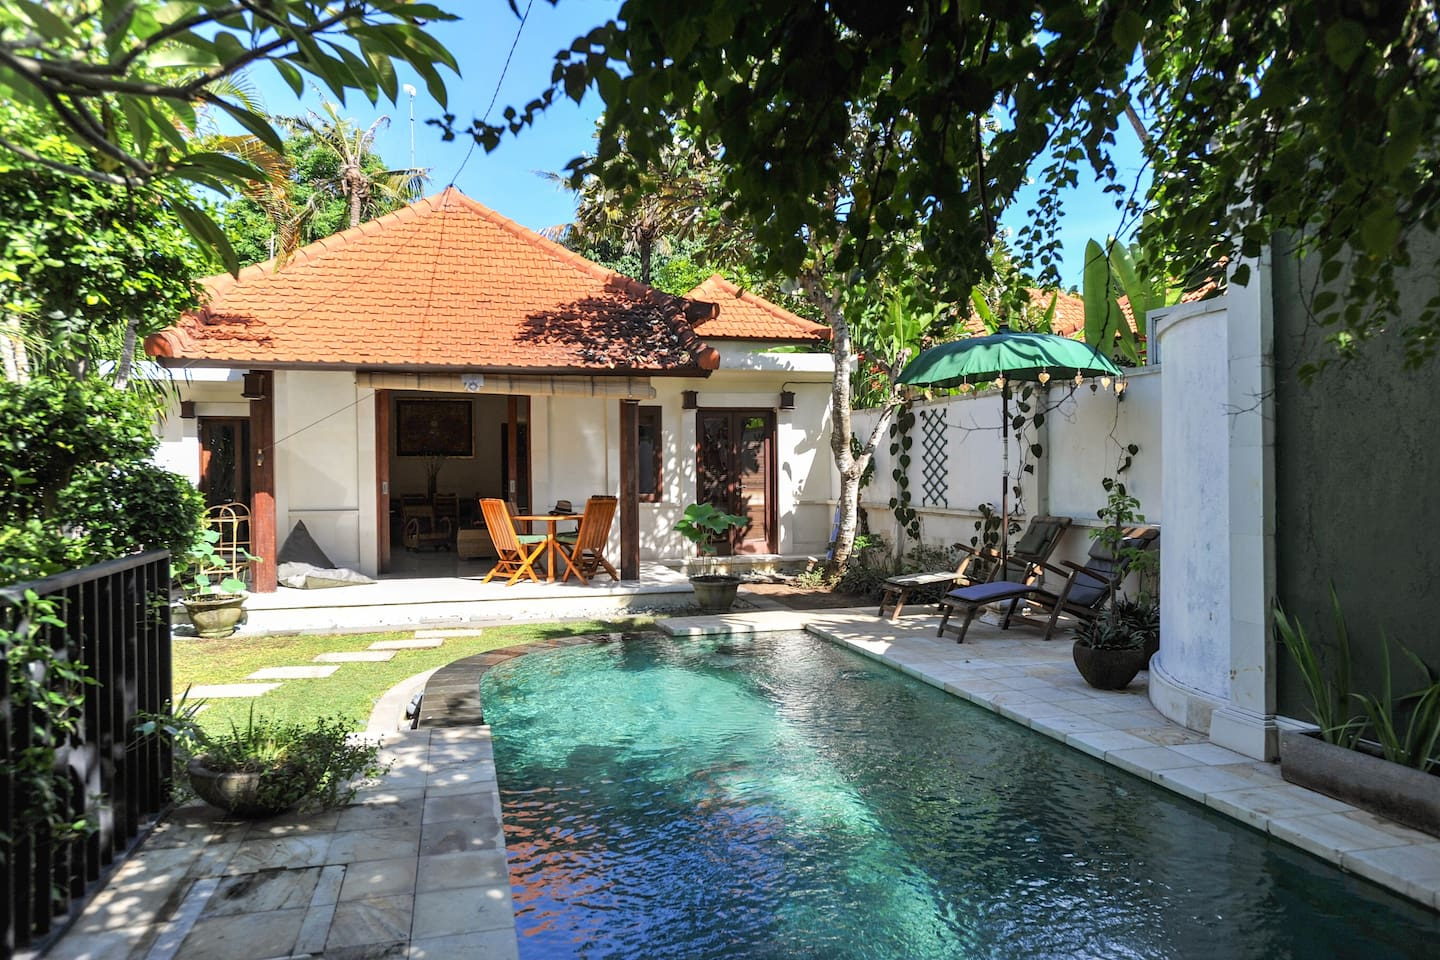 2 BEDROOM GARDEN VILLA WITH POOL.